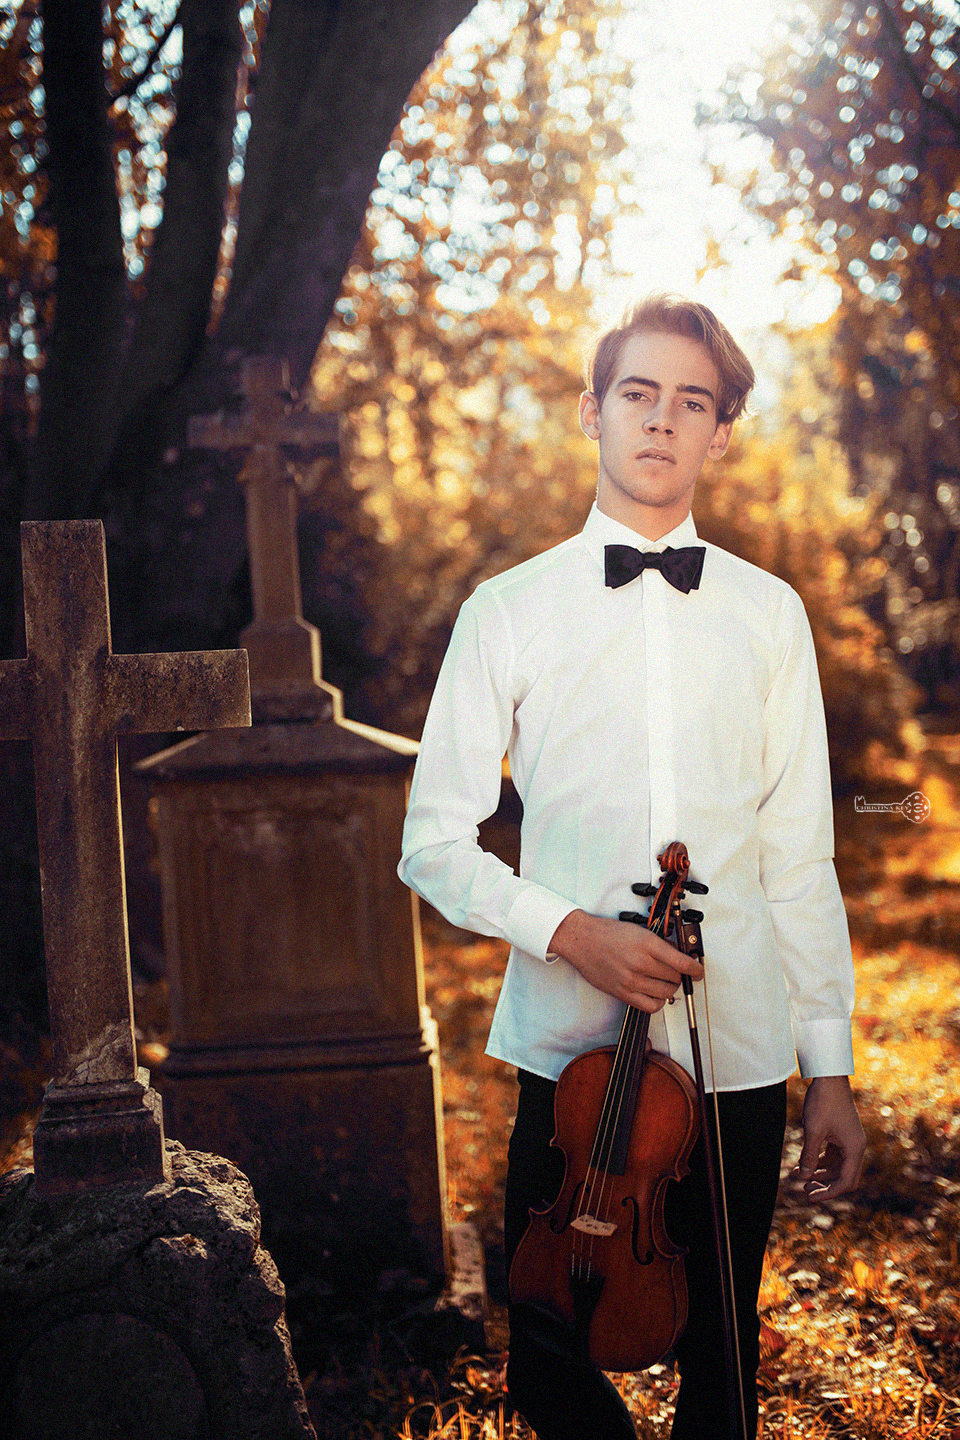 The Violinist // Jonathan Heck by Christina Key